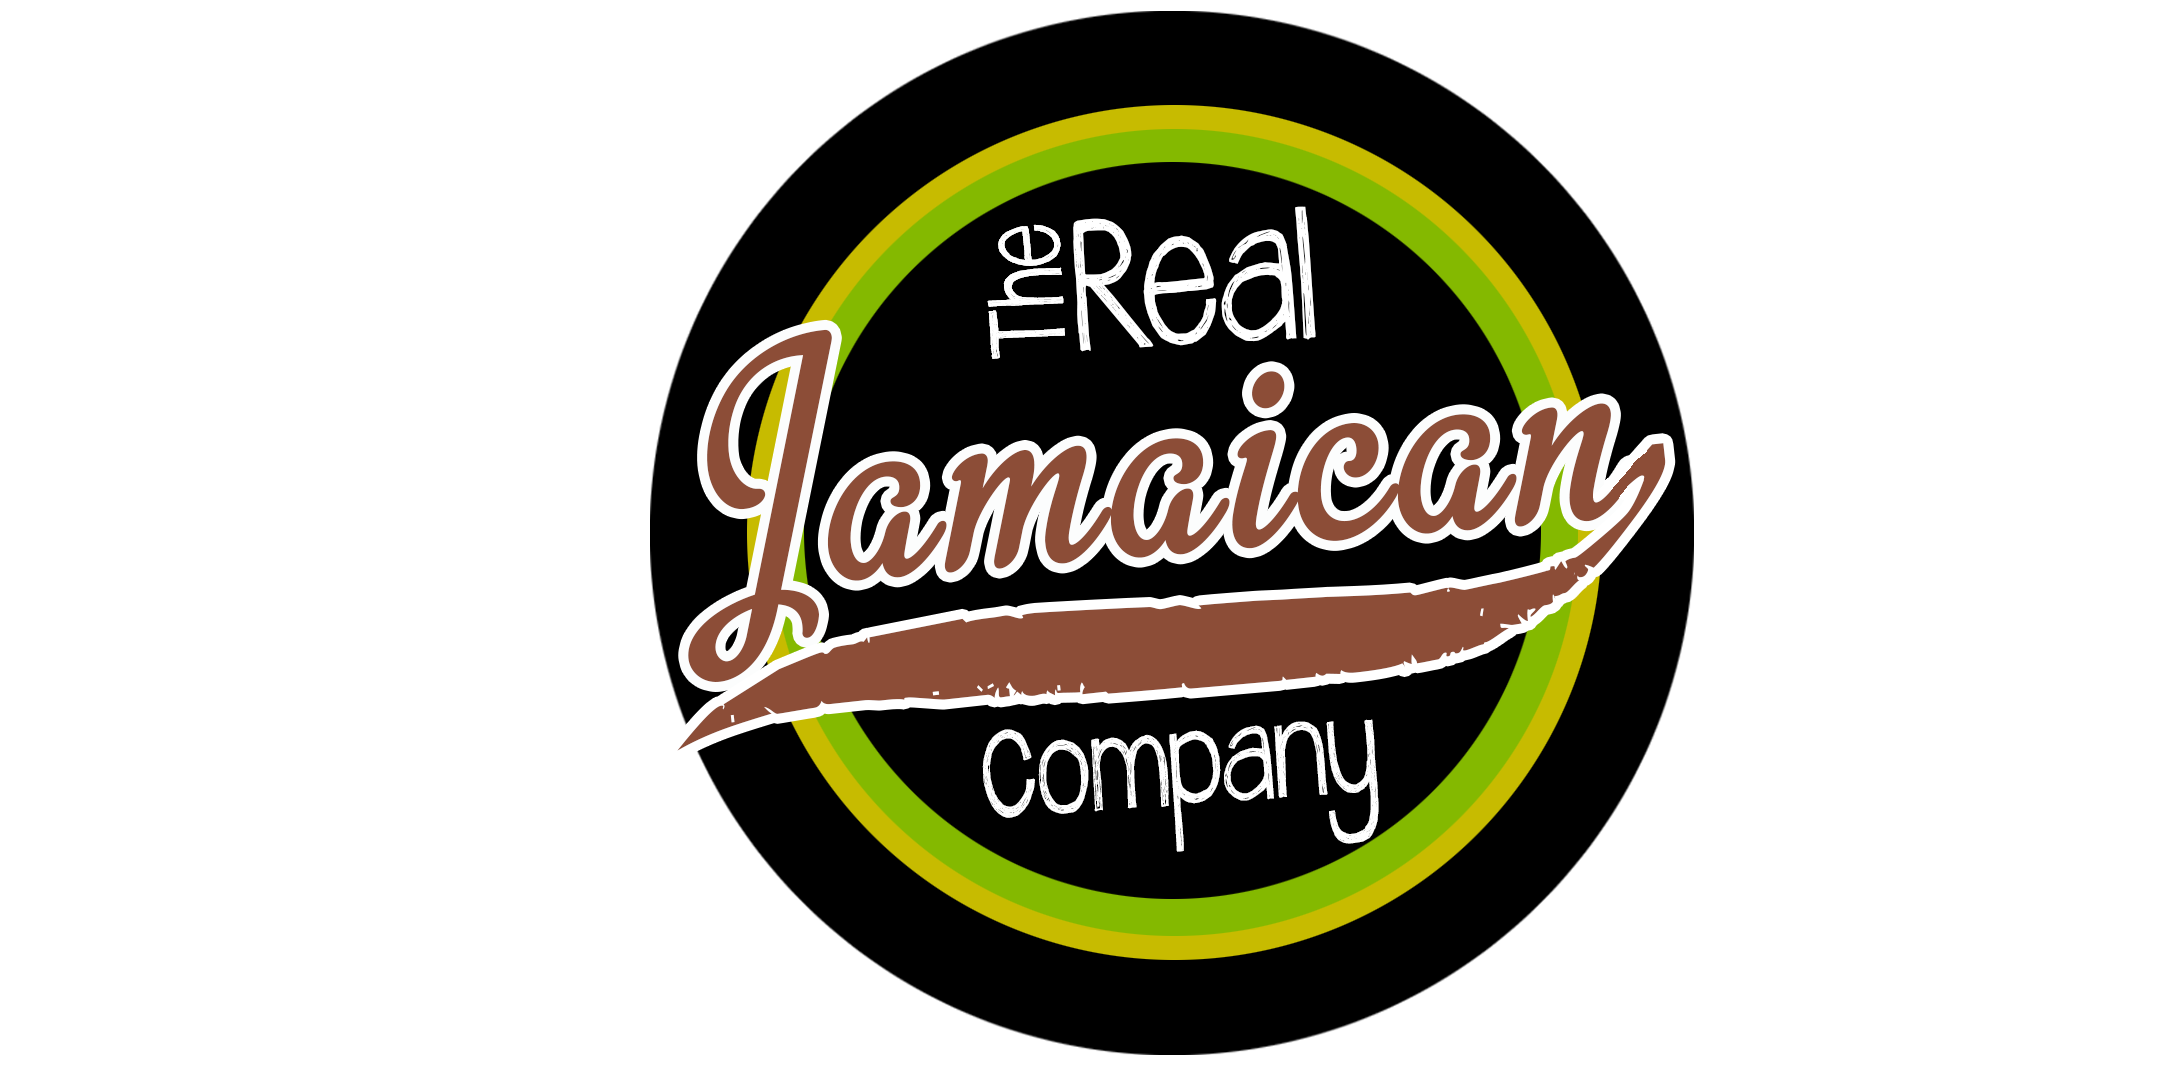 The Real Jamaican Co